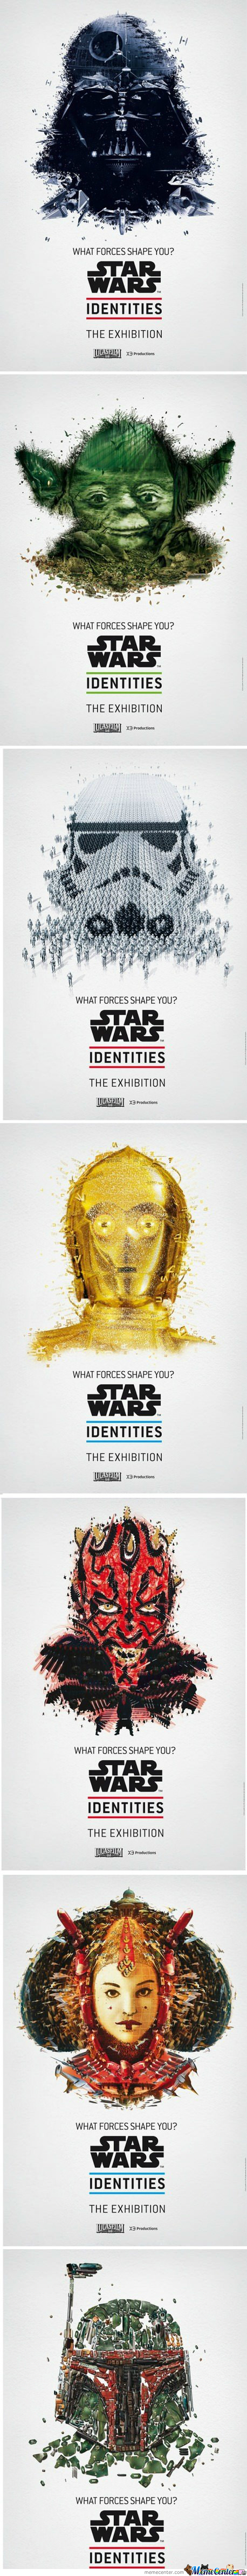 Star Wars Reloded